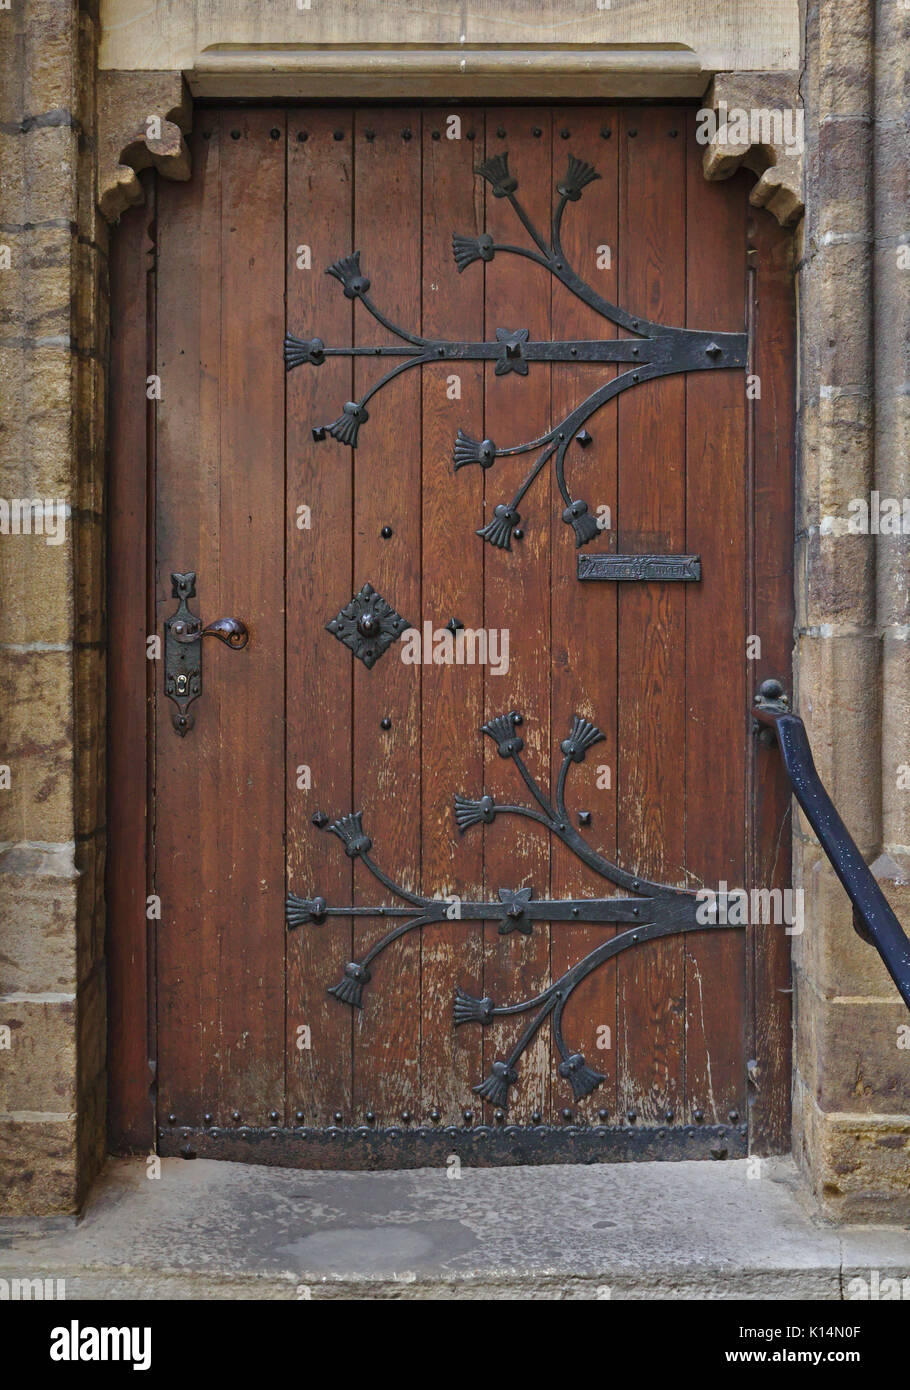 Antique Wooden Door With Archway And Steps